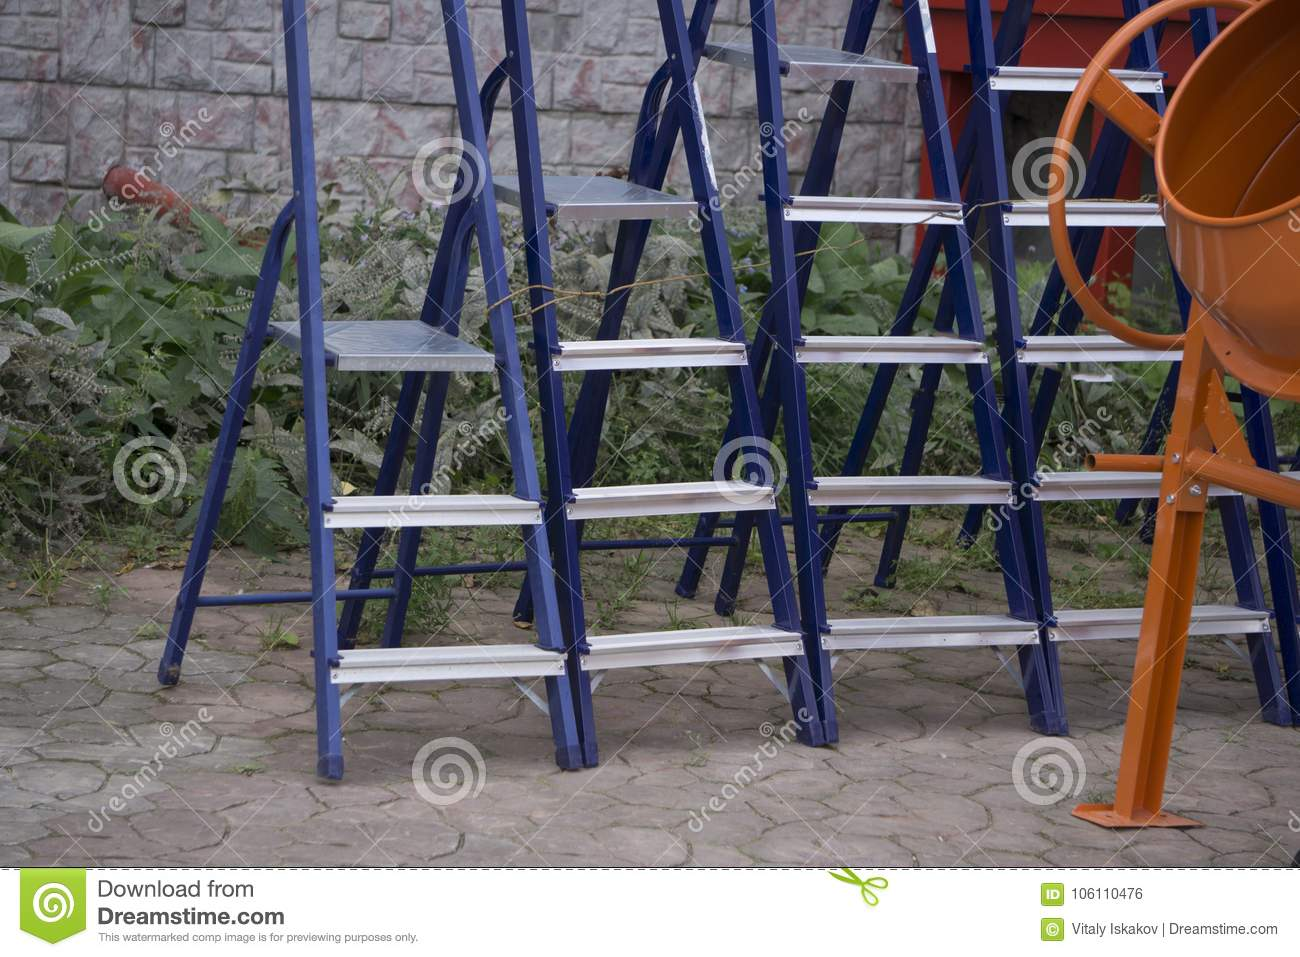 The Tool Store >> Many New Step Ladder Display On The Tool Store Shop Stock